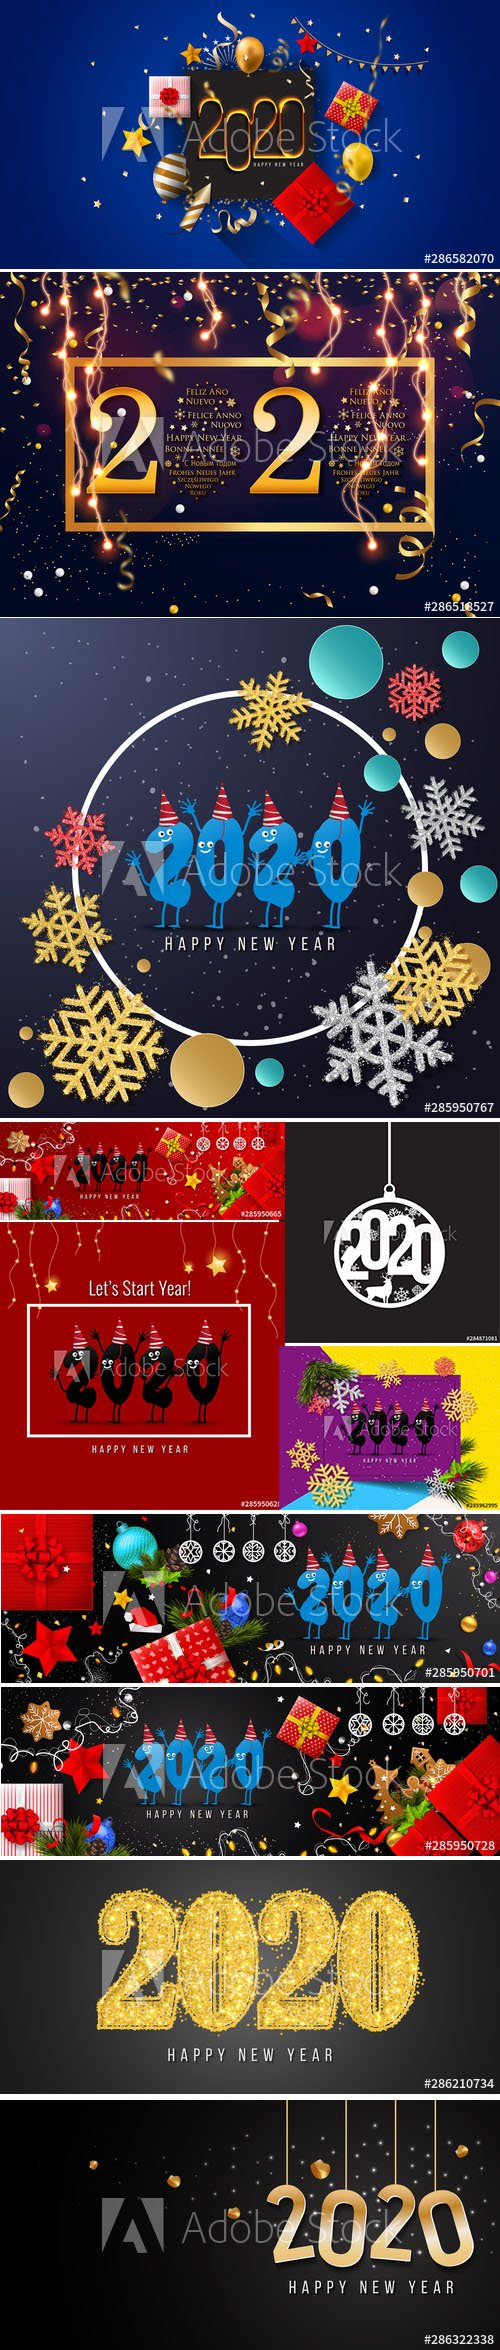 2020 Happy New Year Greeting Card and New Year AI Background vol.3